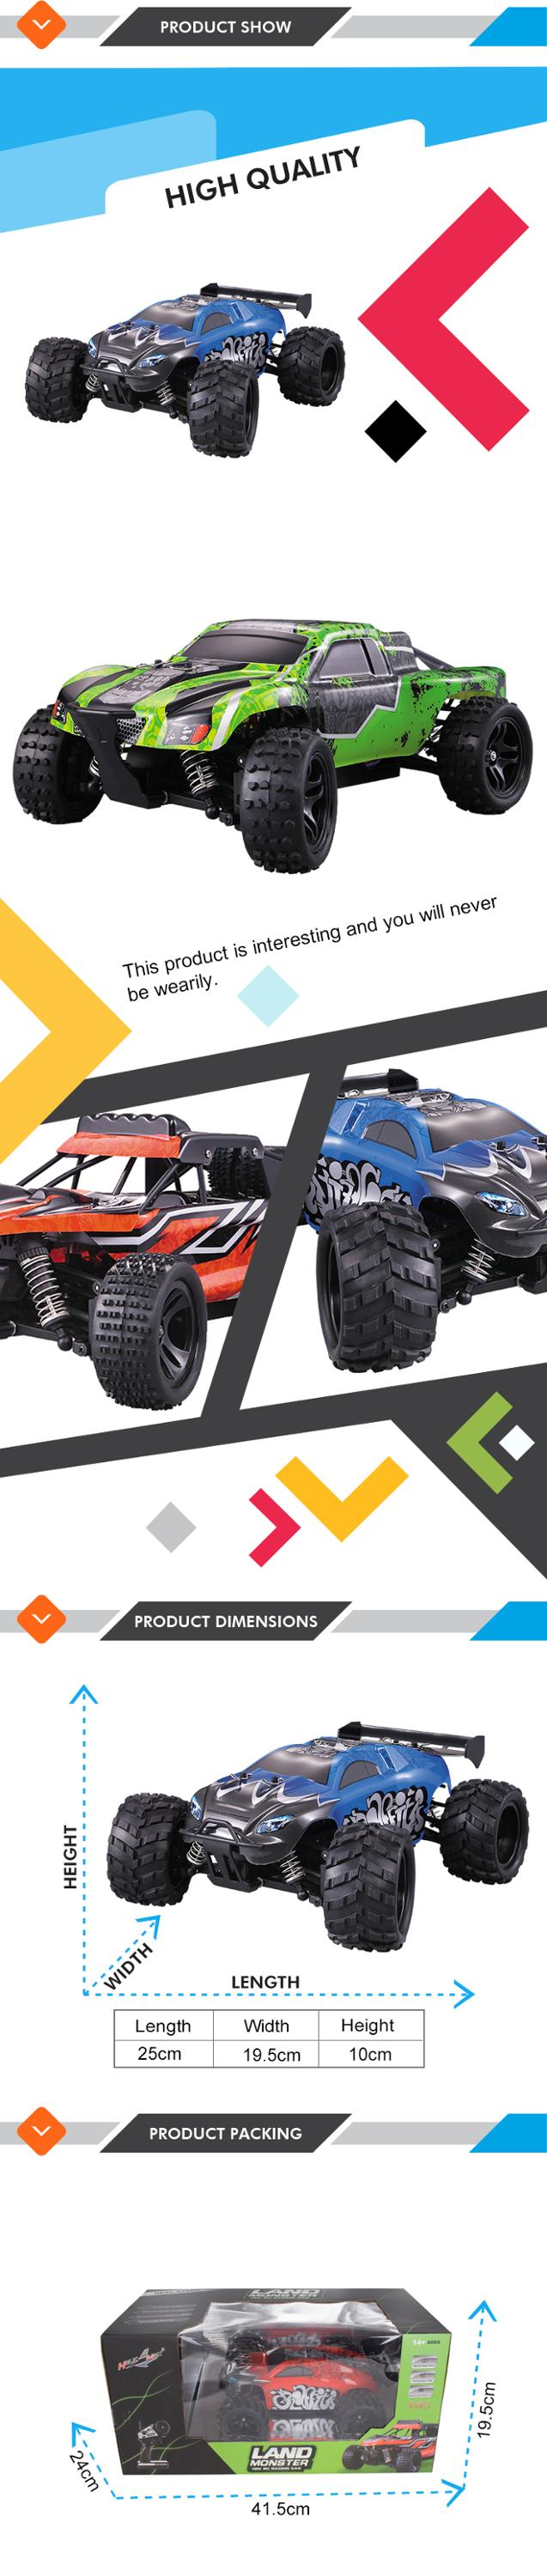 2017new rc electric toy remote control toy car for boys